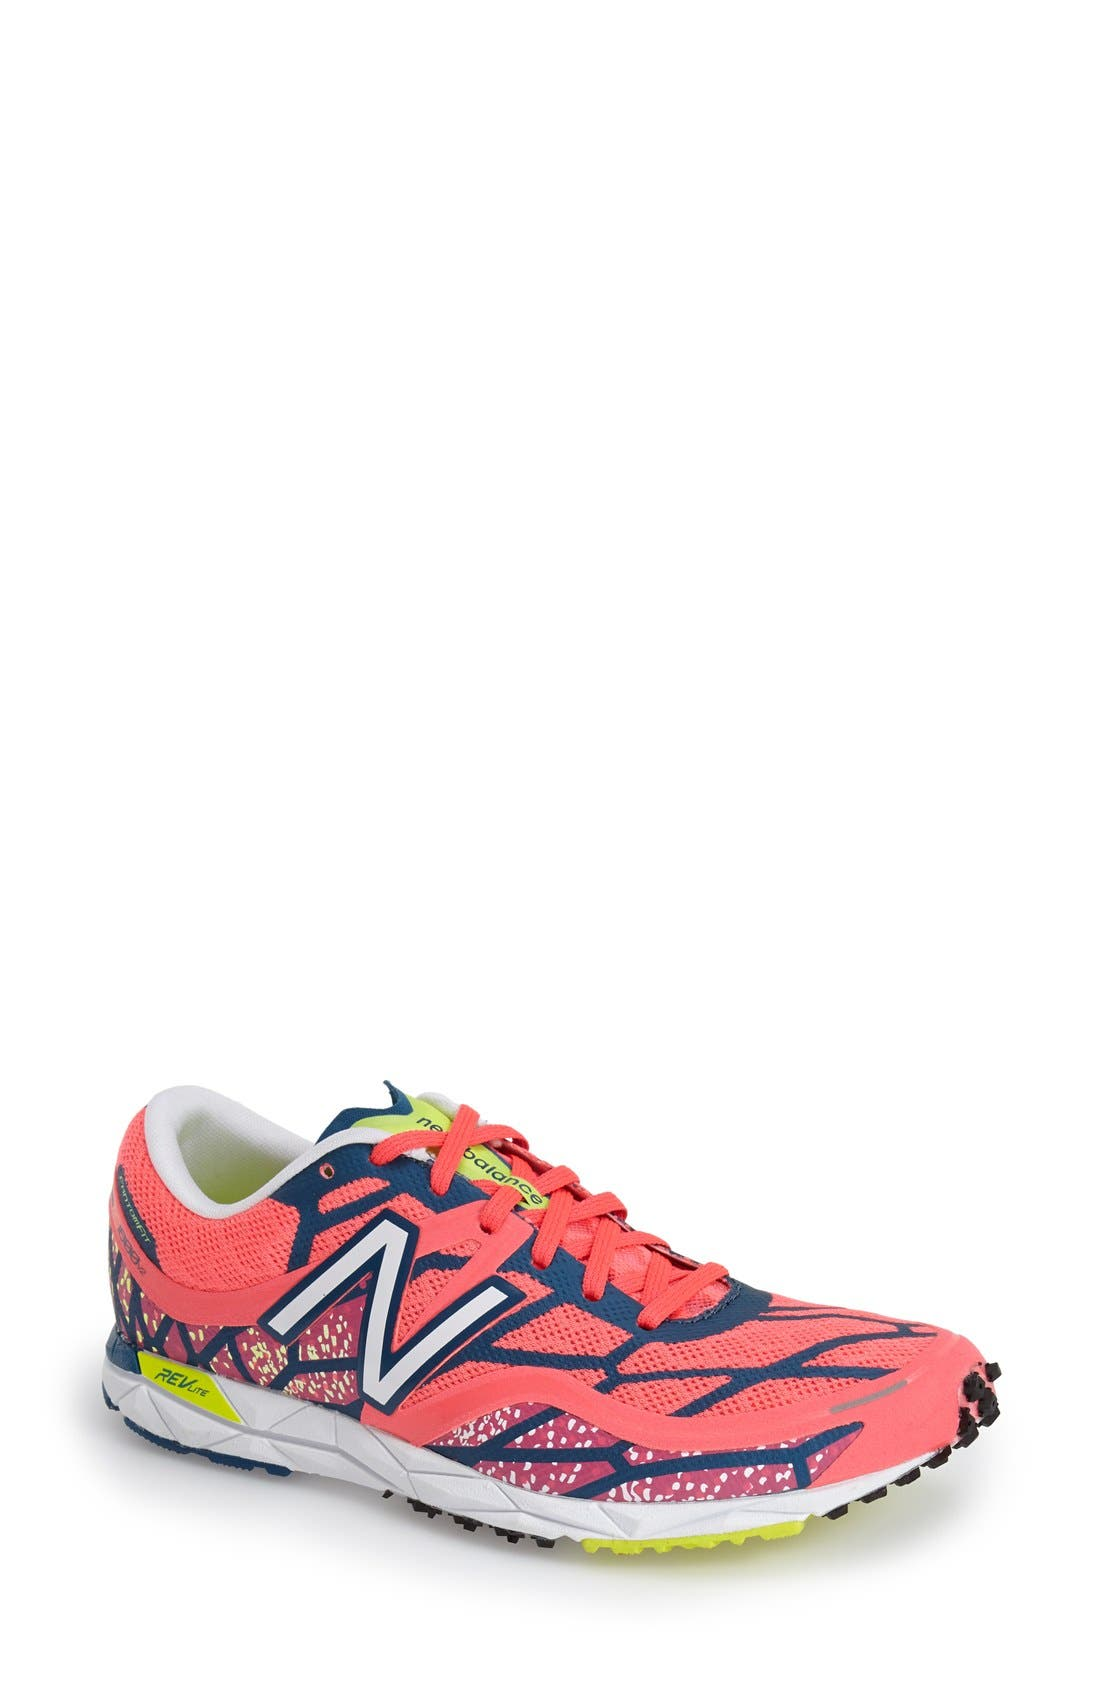 Main Image - New Balance '1600' Running Shoe (Women)